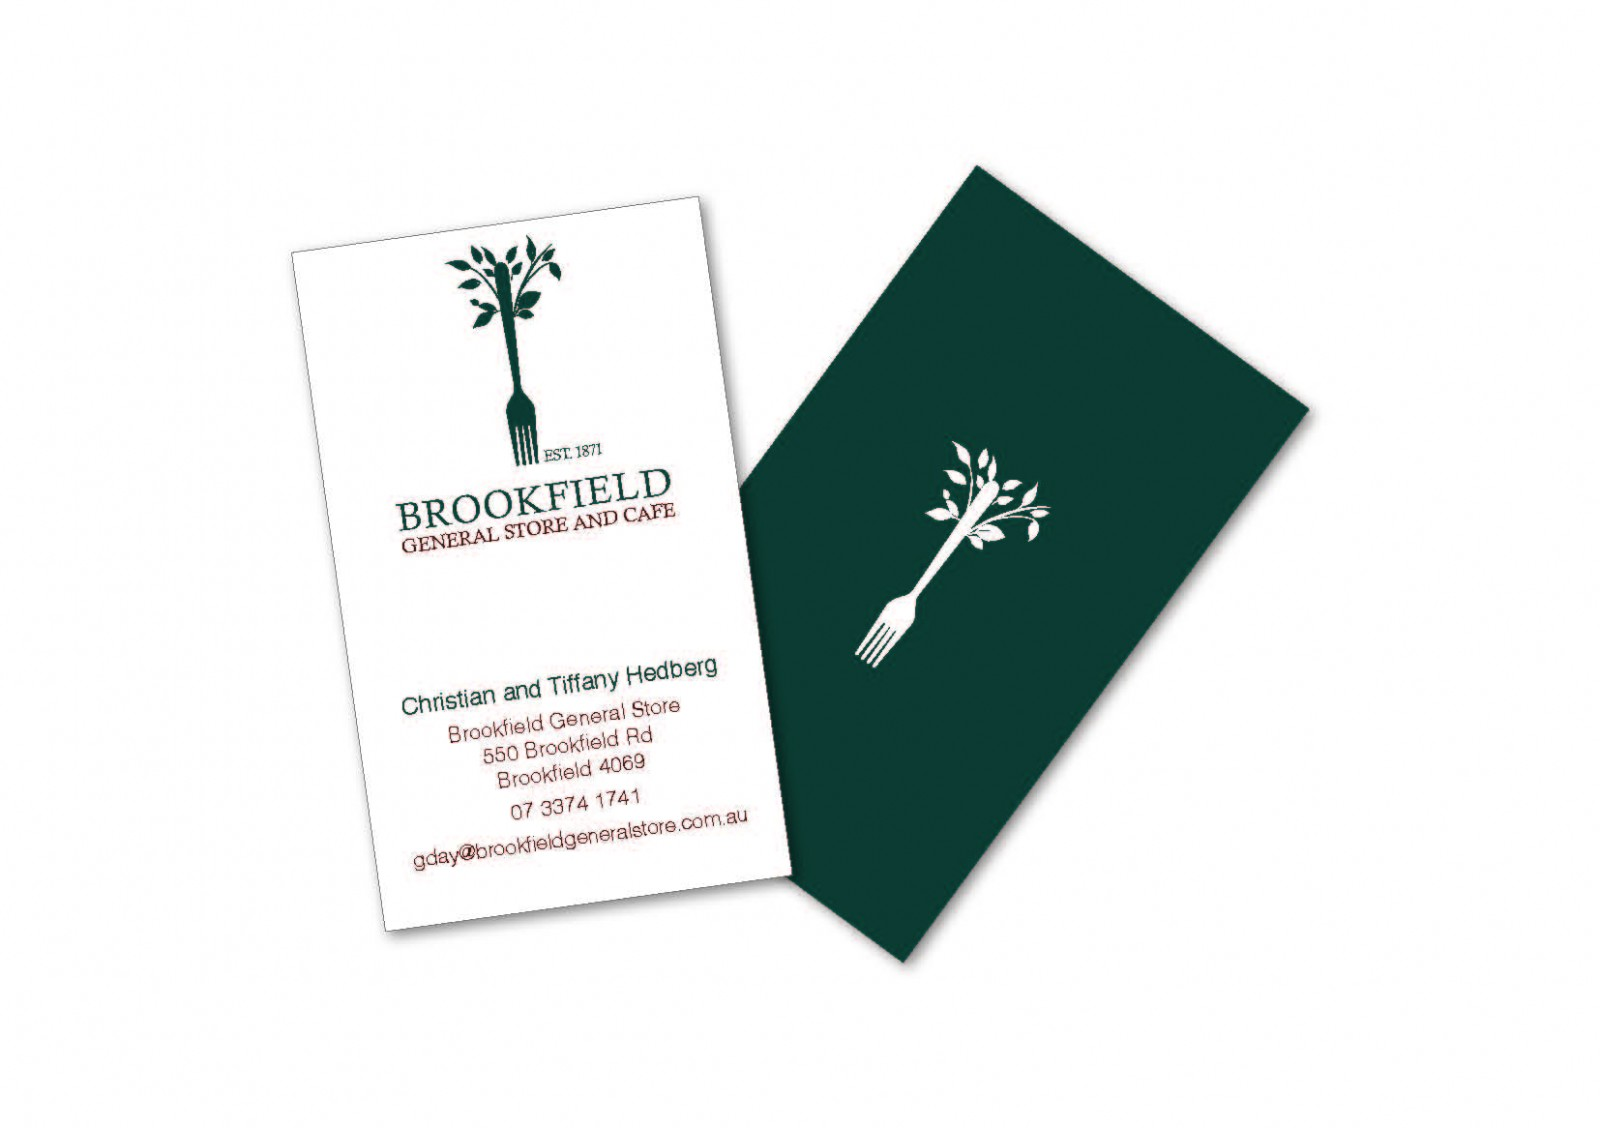 Business Card design for Brookfield General Store